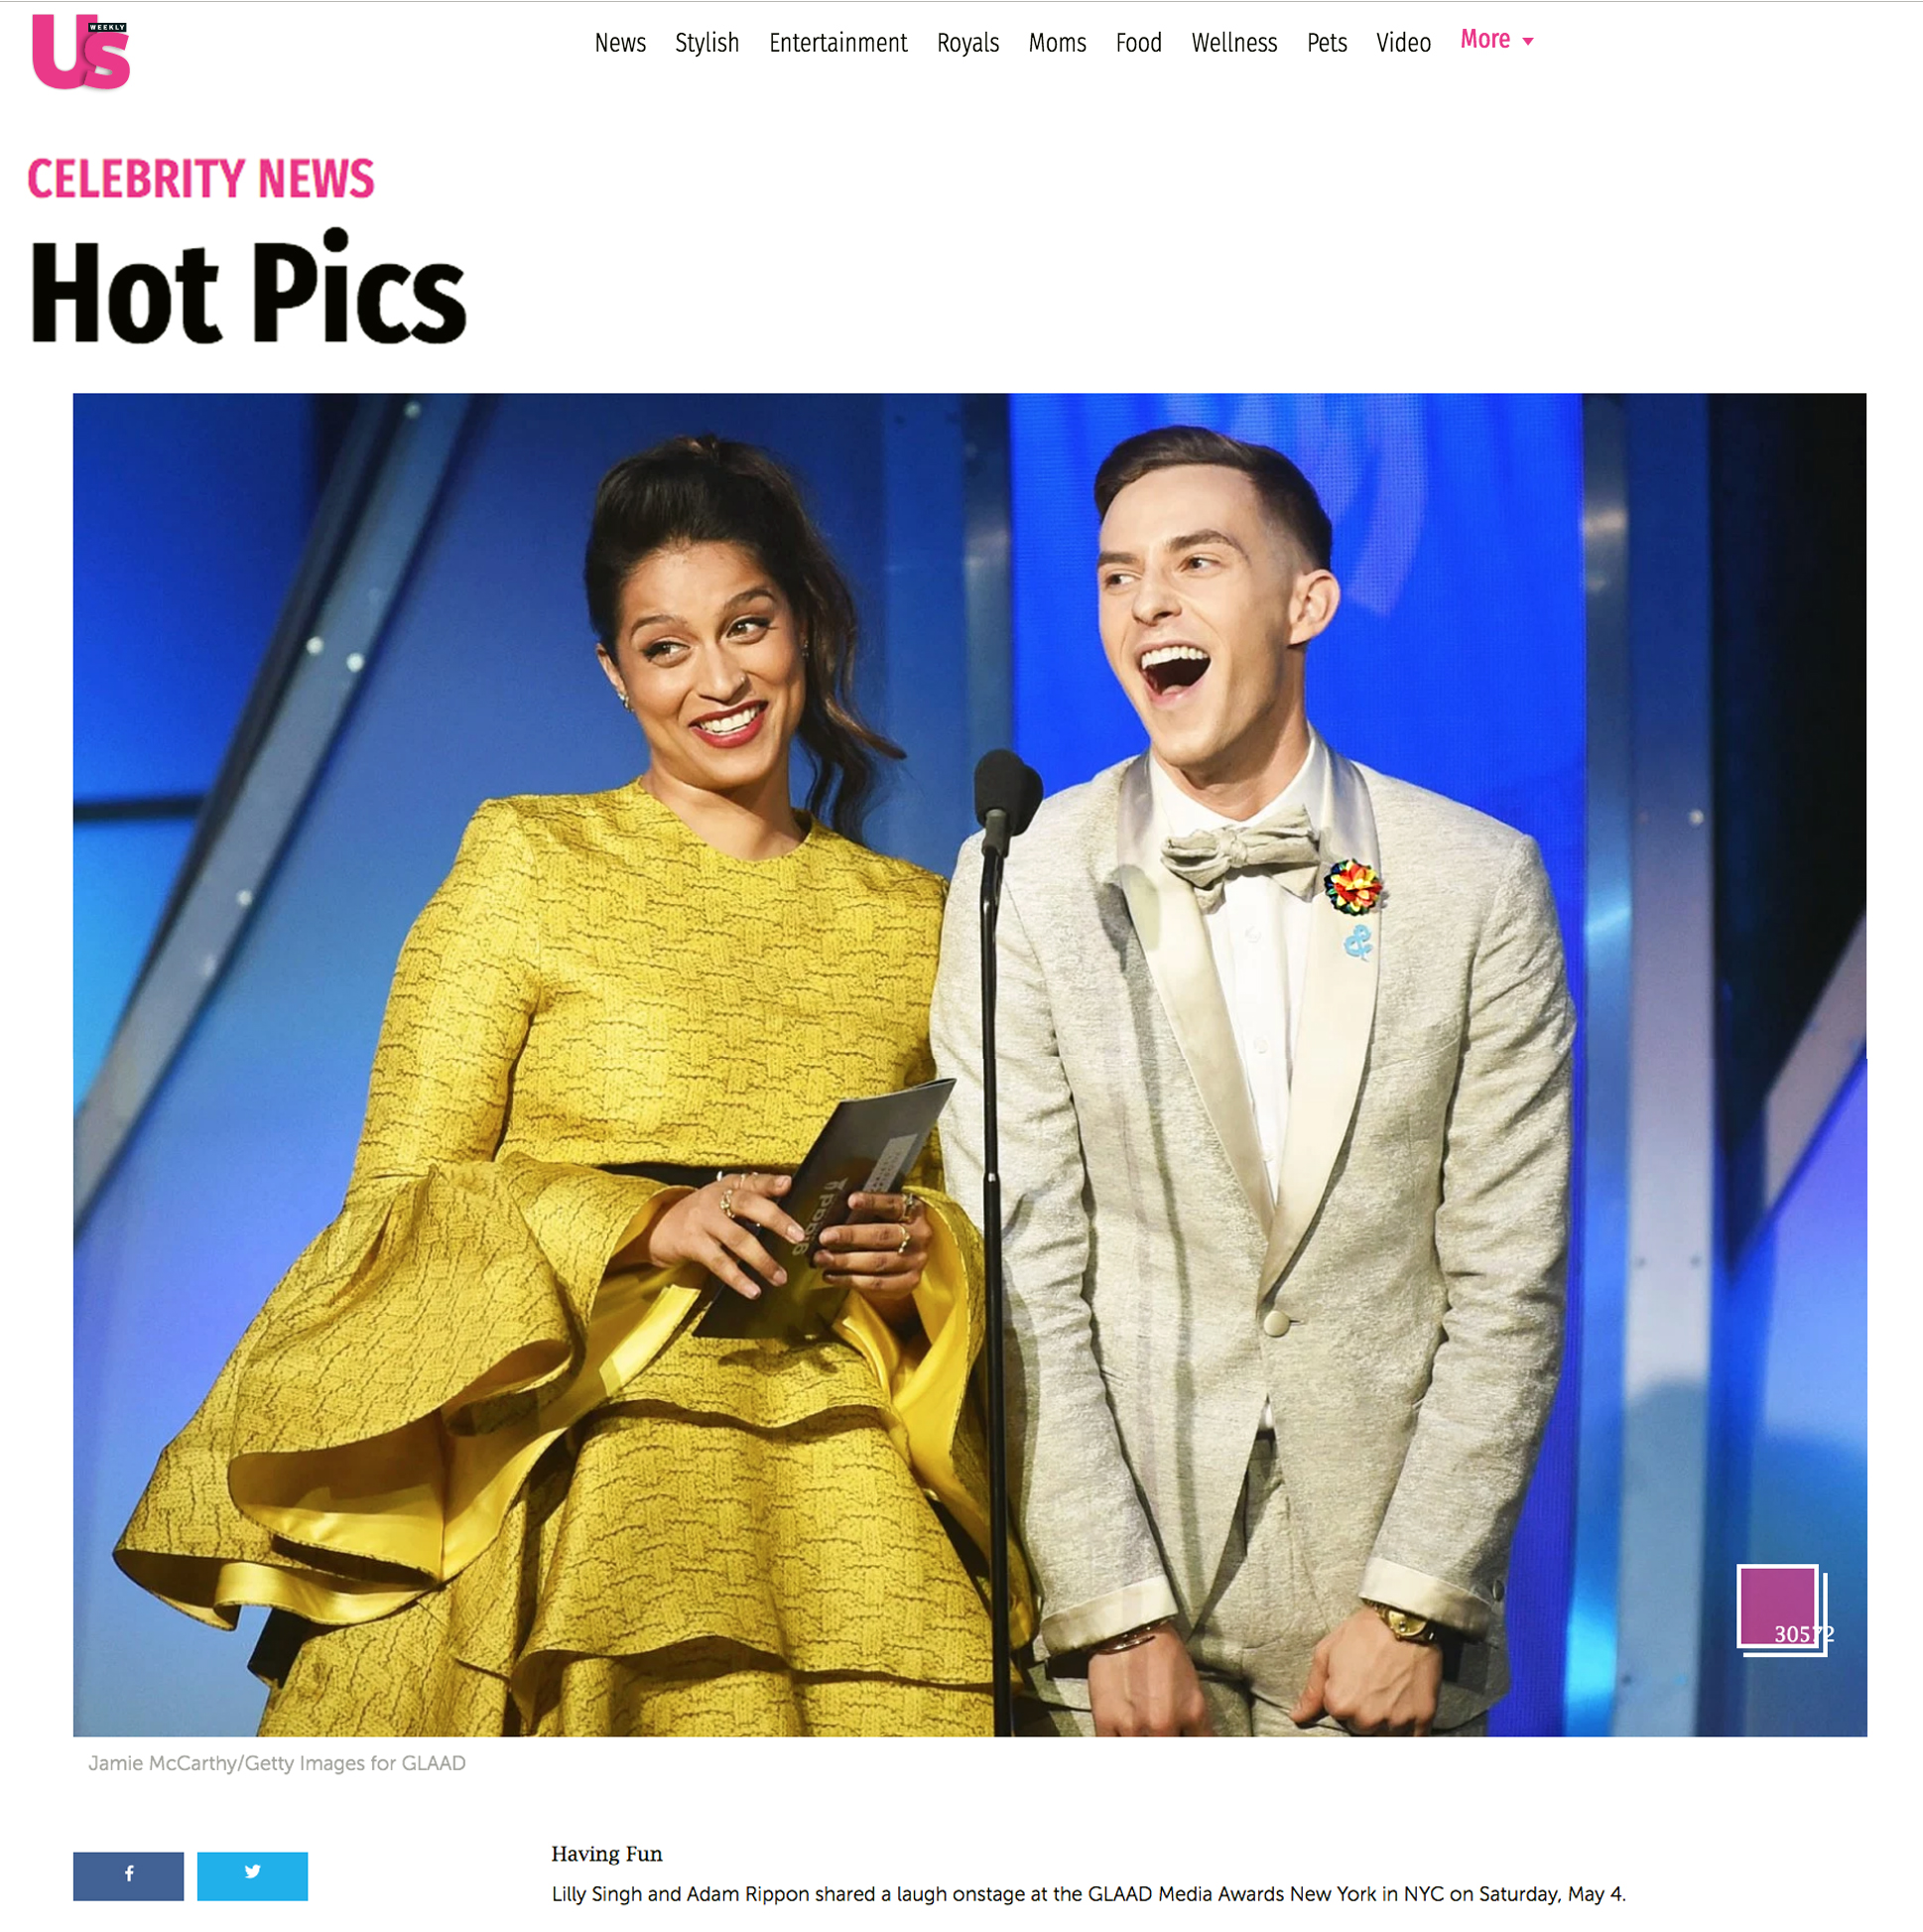 US Weekly - Lilly Singh (L) and Adam Rippon, wearing Fleur'd Pins PRIDE Satin Dahlia, speak onstage during the 30th Annual GLAAD Media Awards New York at New York Hilton Midtown on May 04, 2019 in New York City. Photo by Jamie McCarthy.jpg